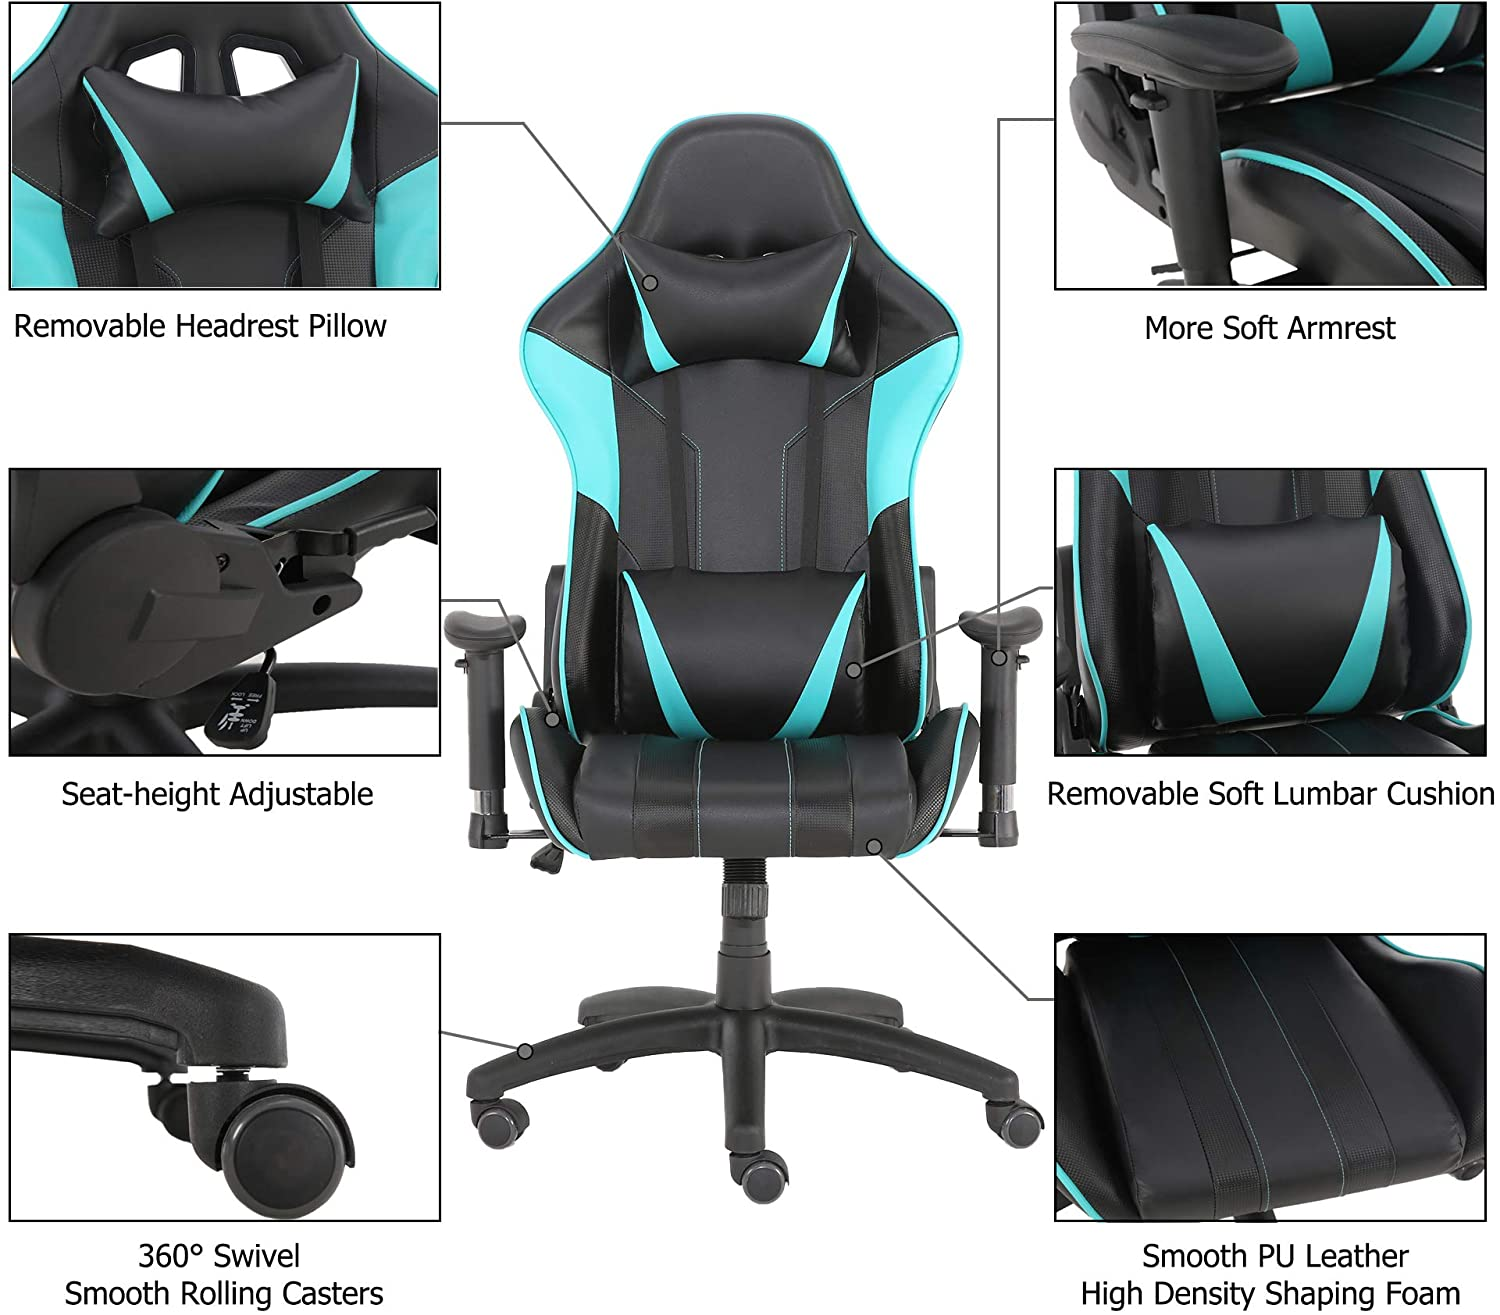 H8c50a96e006f4403ade8048899924cabL - Racer Gaming Office Chairs 180 Degree Spin Lounger Computer Chair,Comfortable Armchair Executive Computer Seat,PU Leather